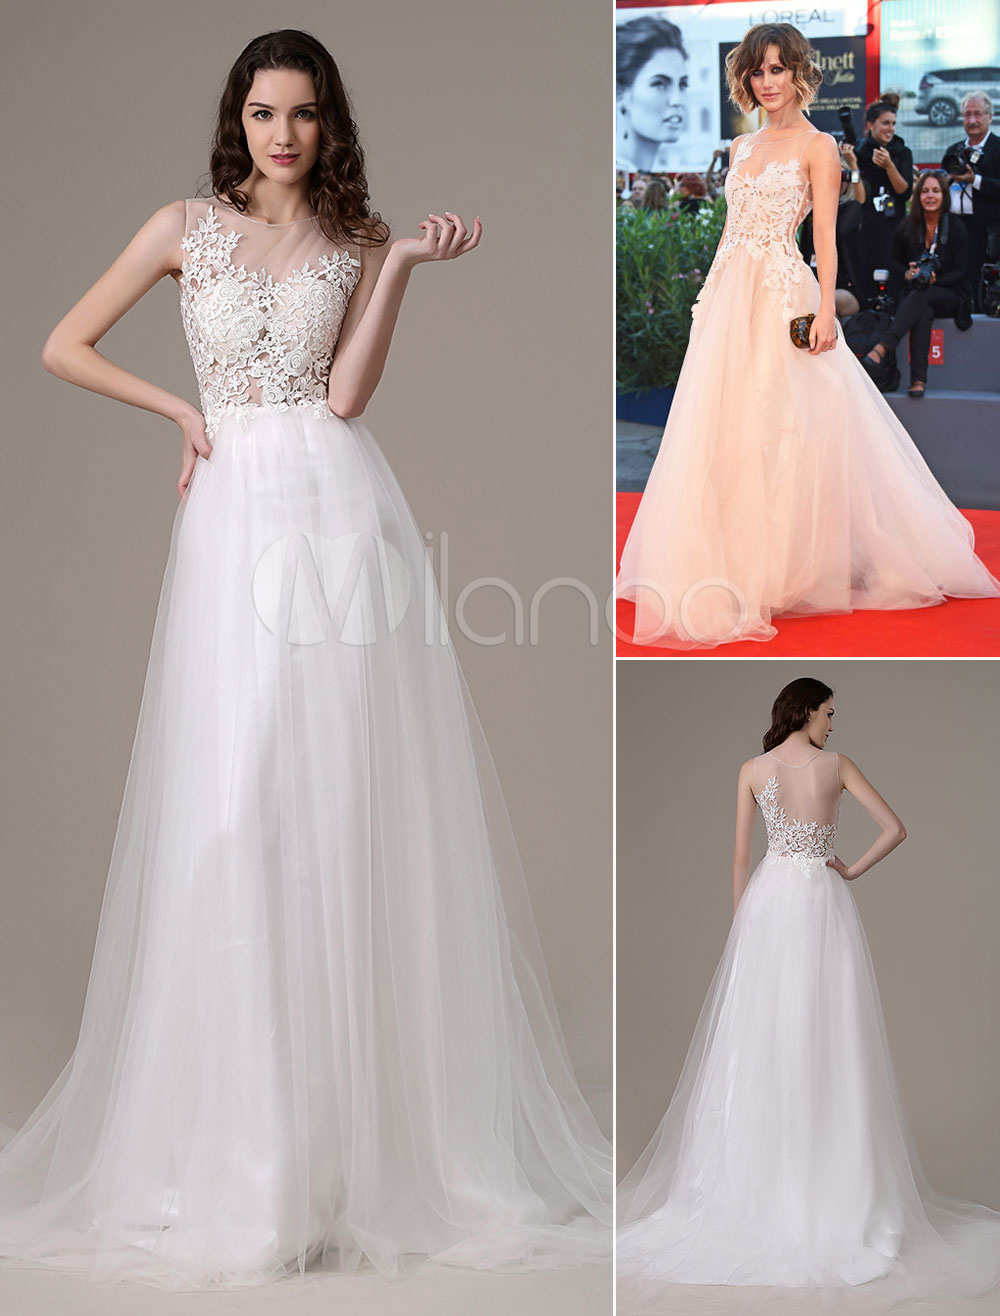 White Prom Dresses 2018 Long Ivory Princess Evening Dress Lace Applique Tulle Illusion Red Carpet Dress